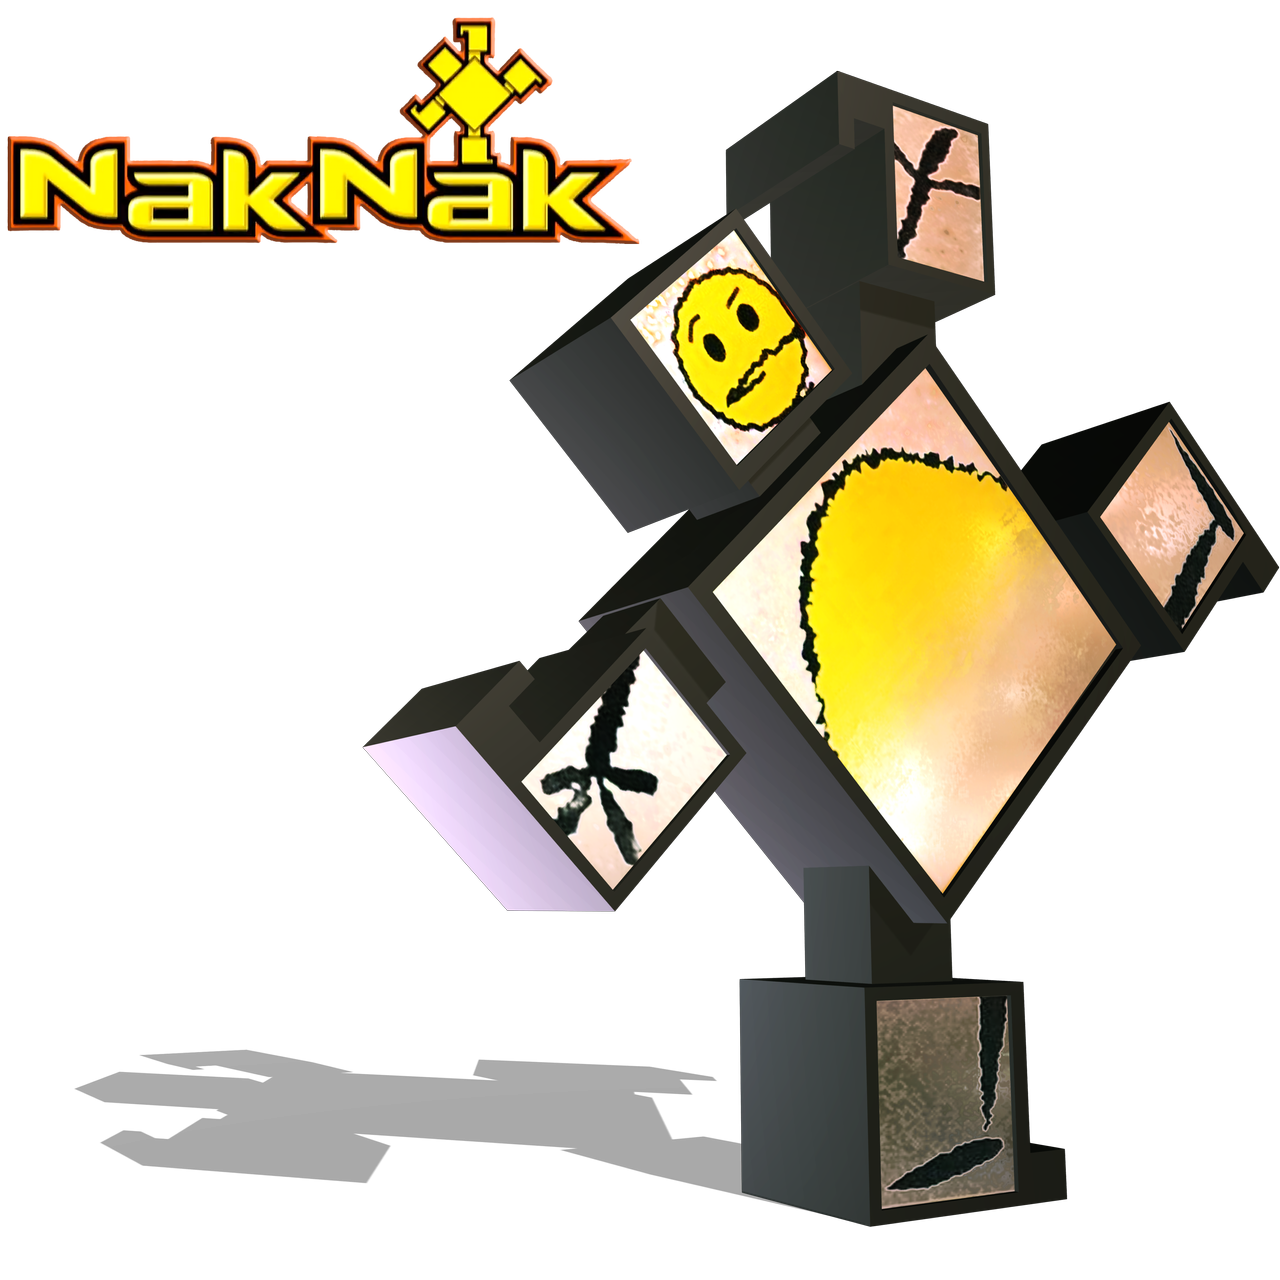 chameleon_nak_by_fawfulthegreat64_ddmlfld-fullview.png